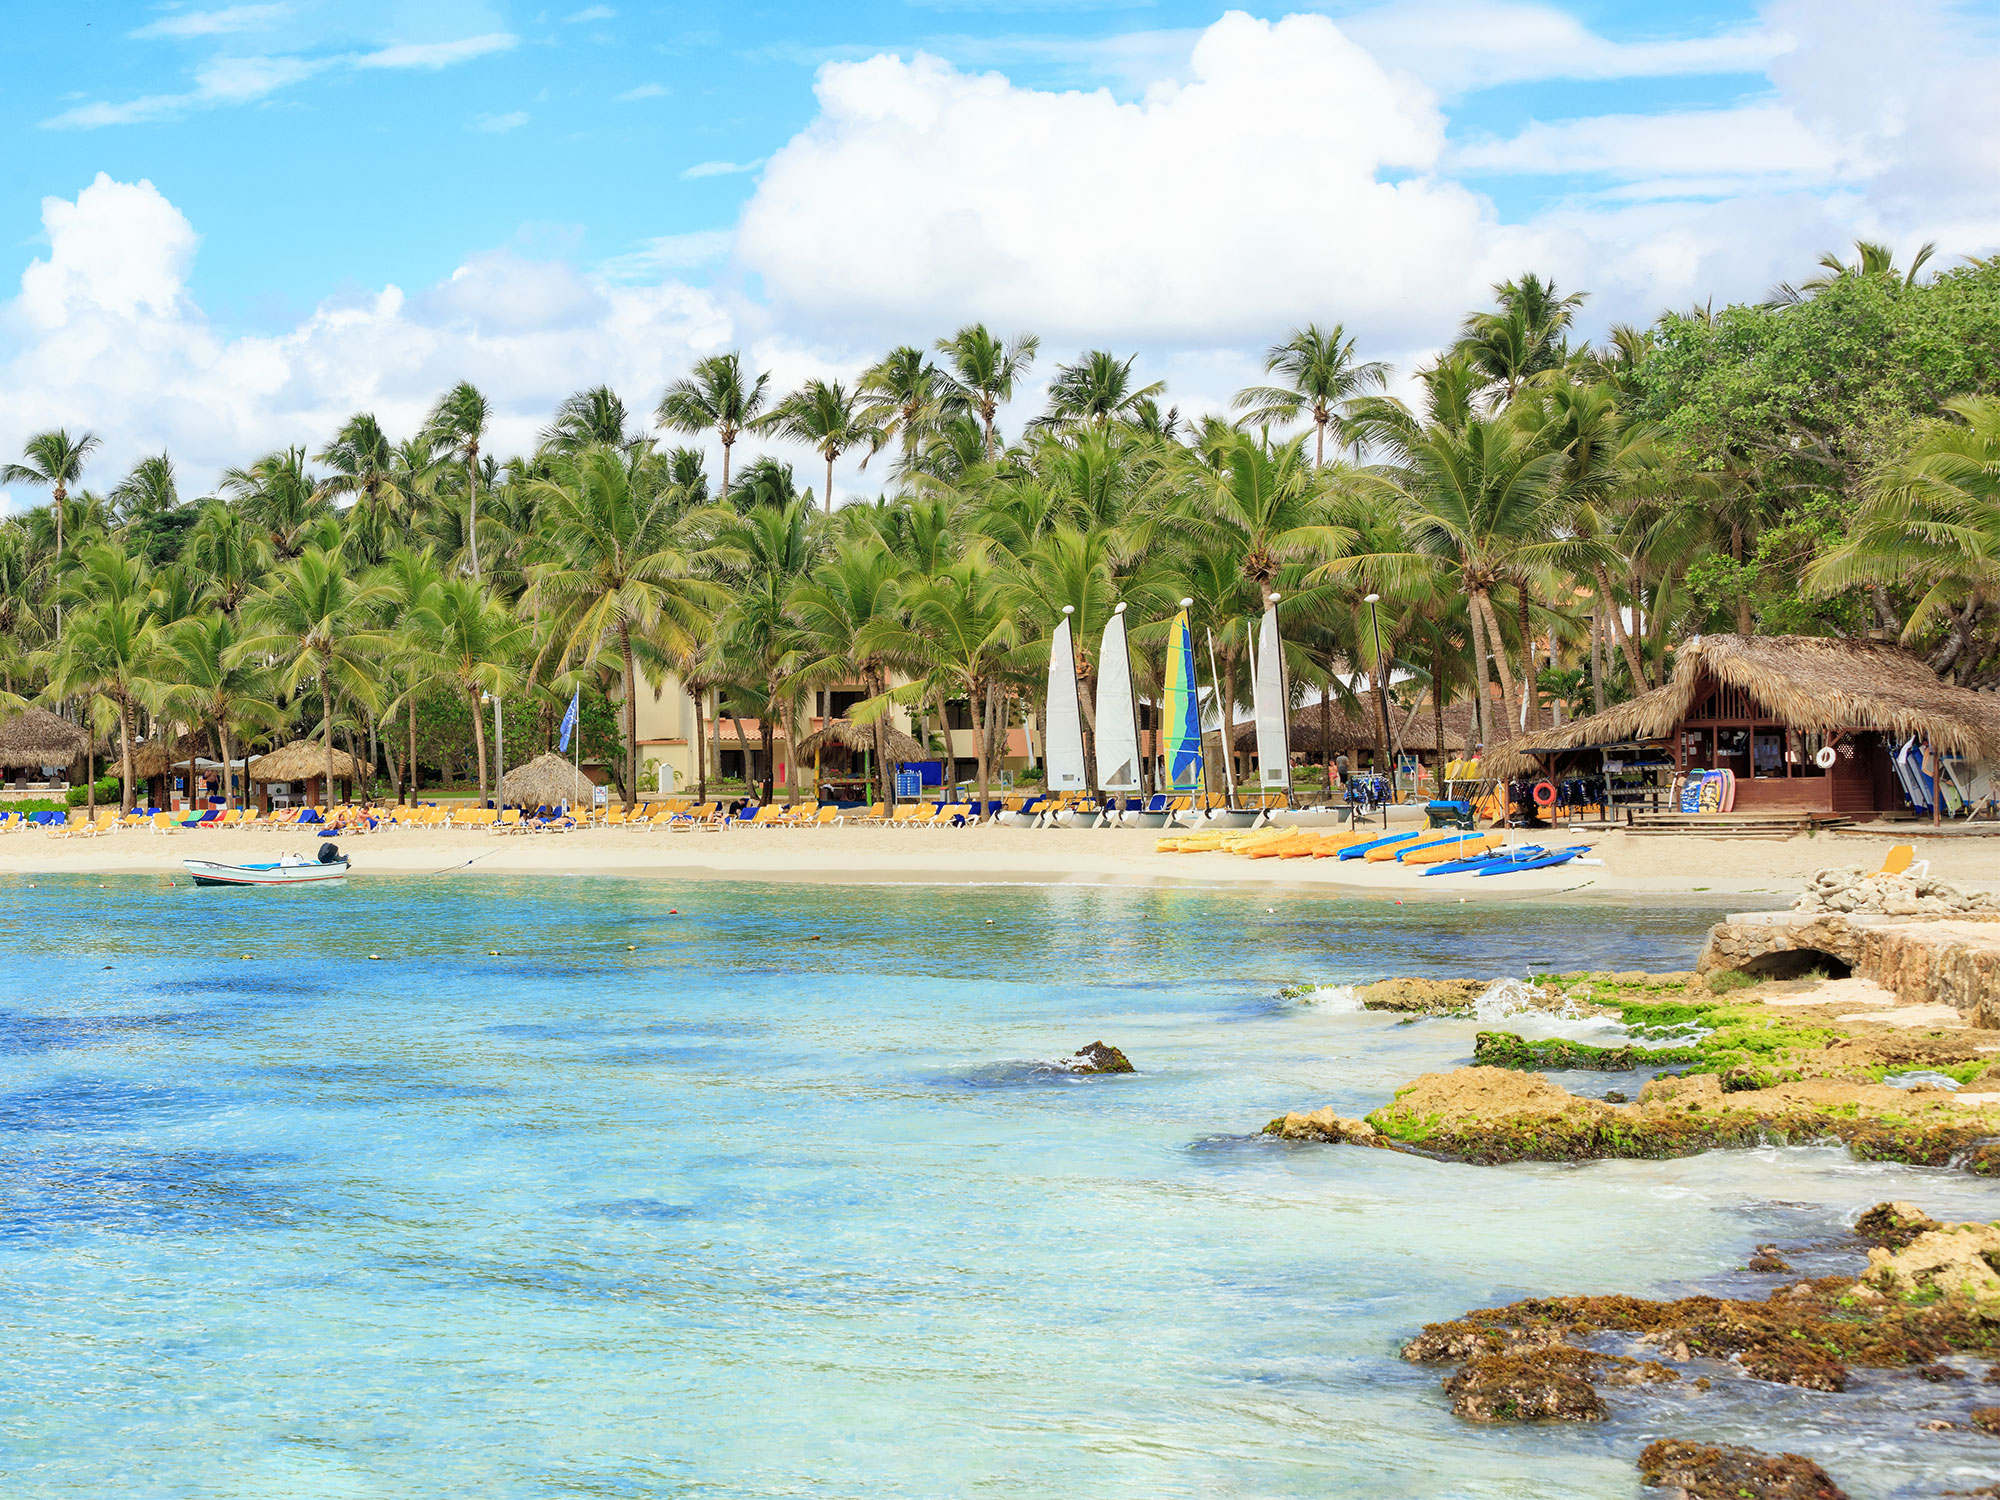 Travel packages for La Romana